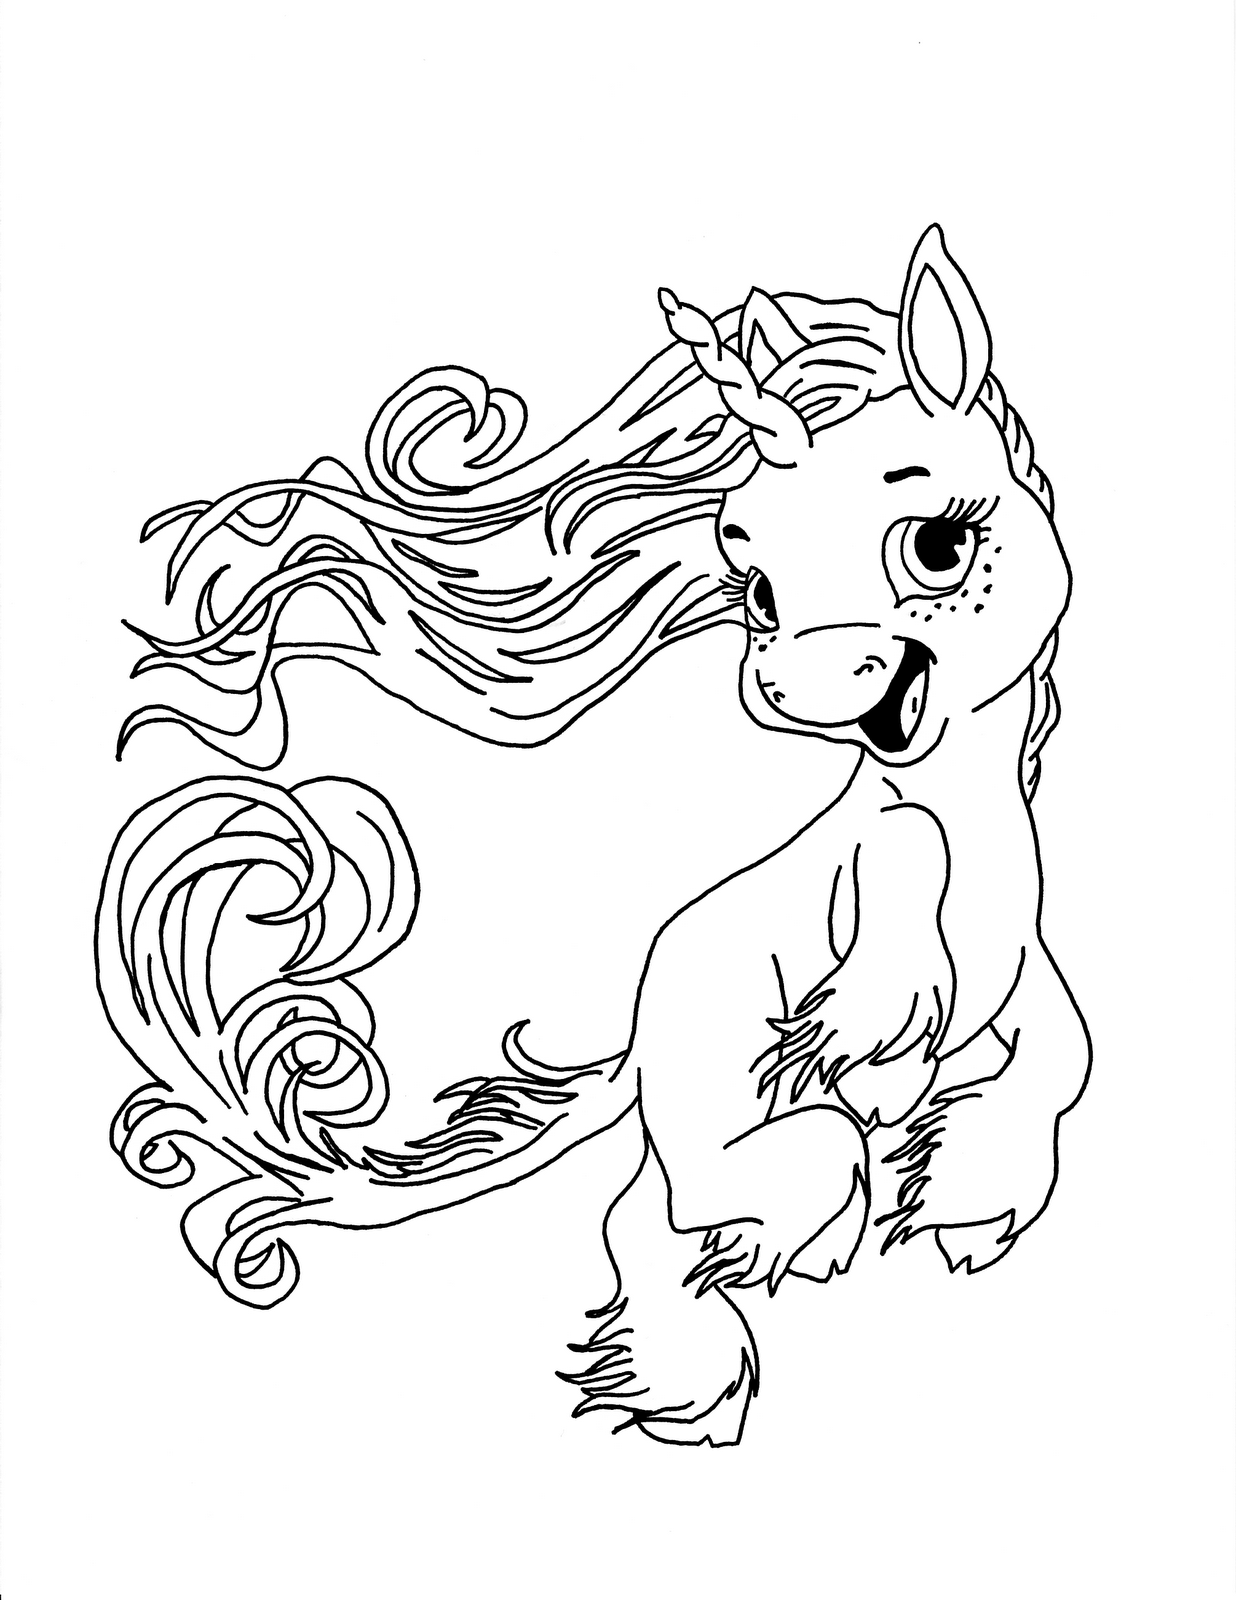 Unicorn Coloring Pages For Adults At Getdrawings Com Free For